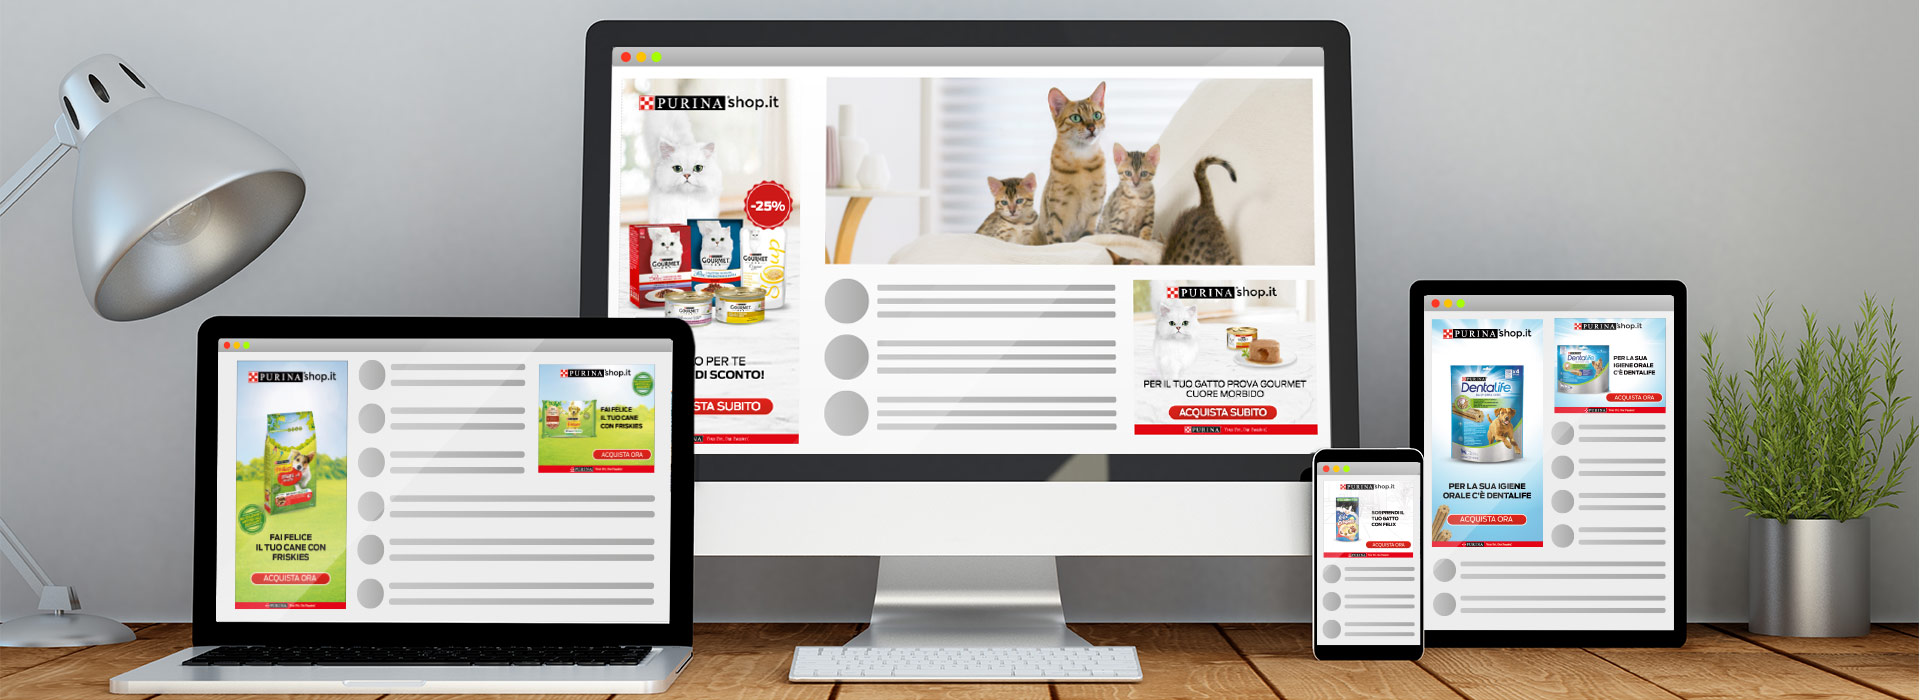 Dynamic Ads Google Display to promote Purinashop.it